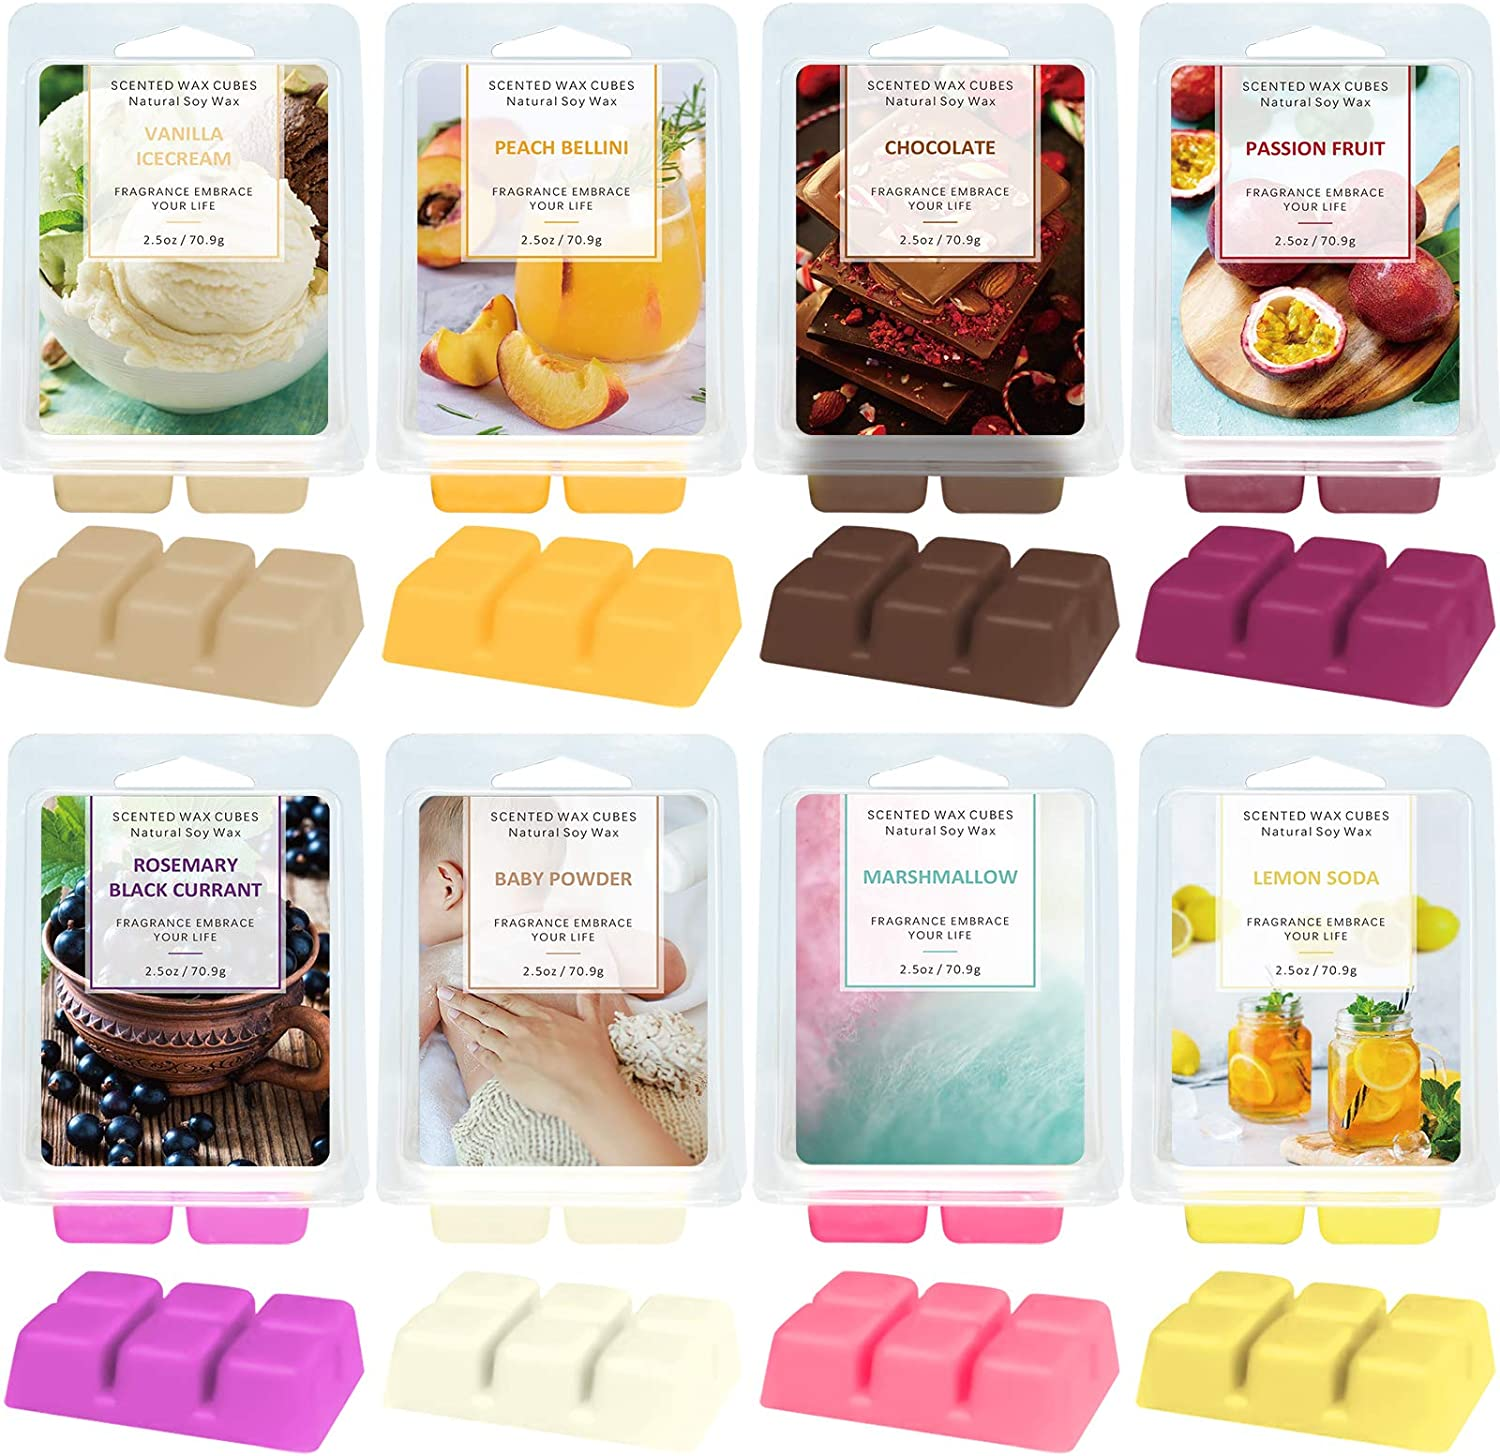 LA BELLEFÉE Wax Melts,Wax Cube, Food &Fruit Fragrance Wax Cube, Candle Wax Warmer Melts, Wax Cubes for Home, Scented Natural Soy Wax Cube, 8X 2.5 oz